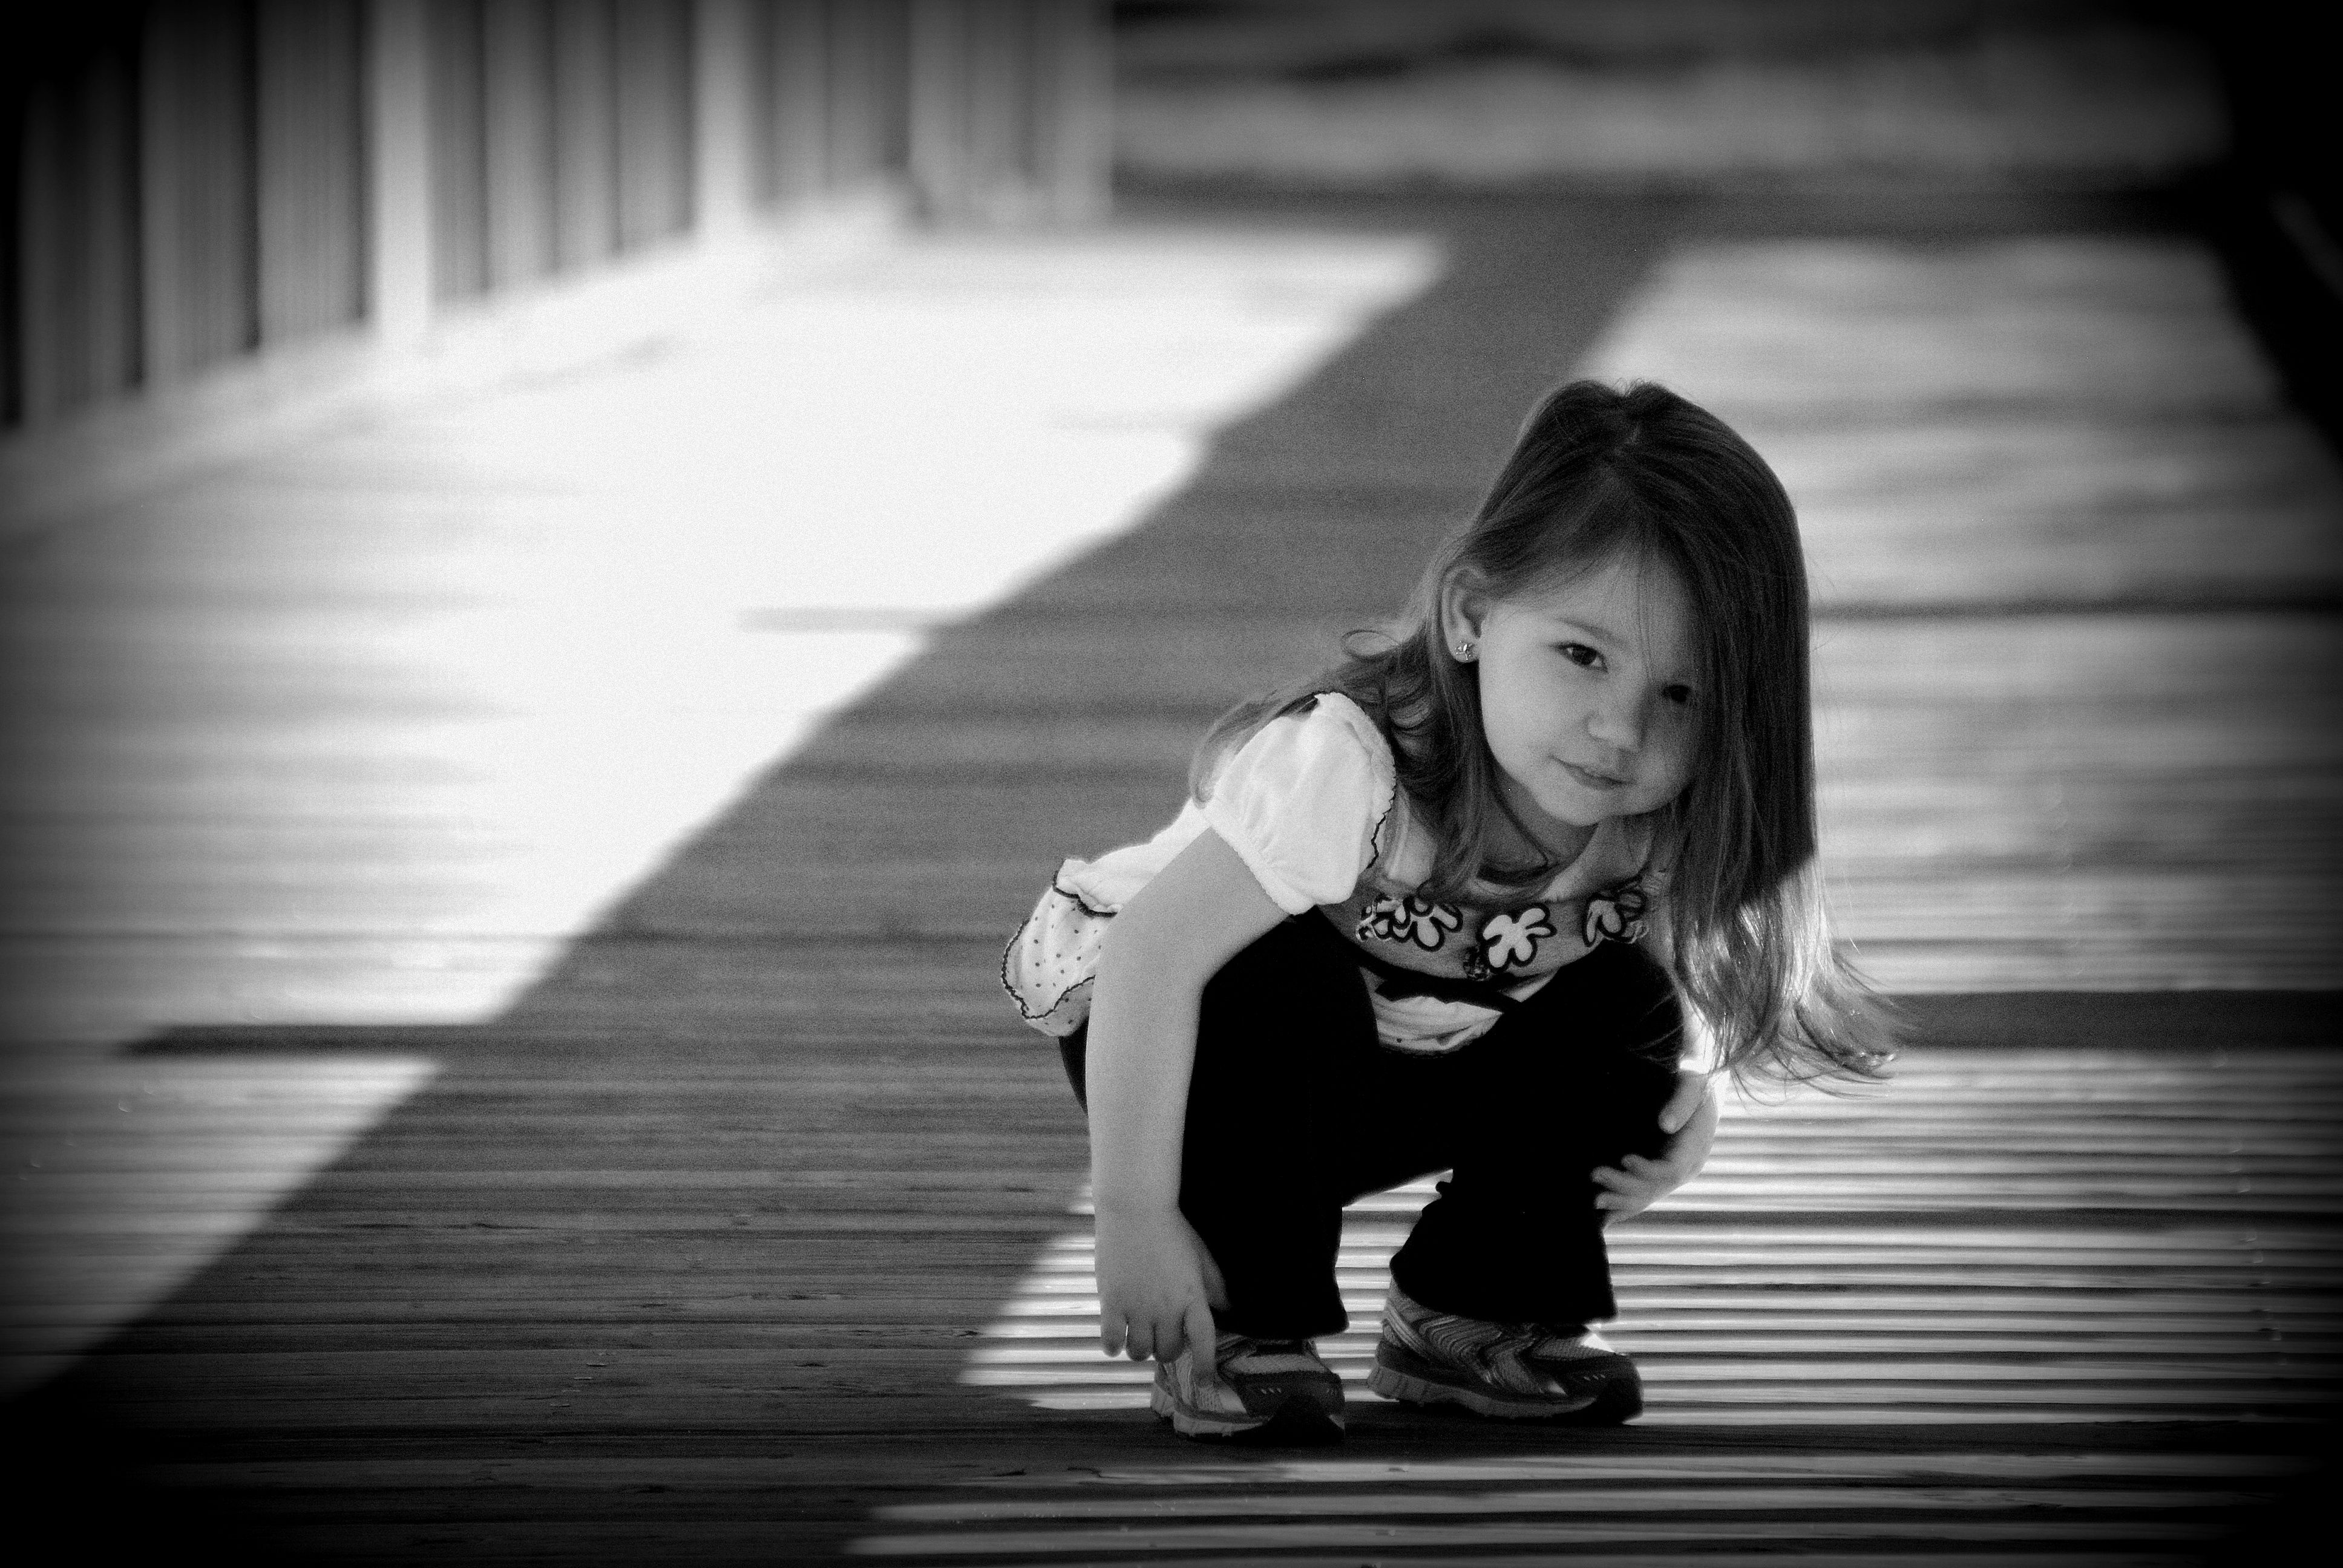 Our little girl on a pier in town.